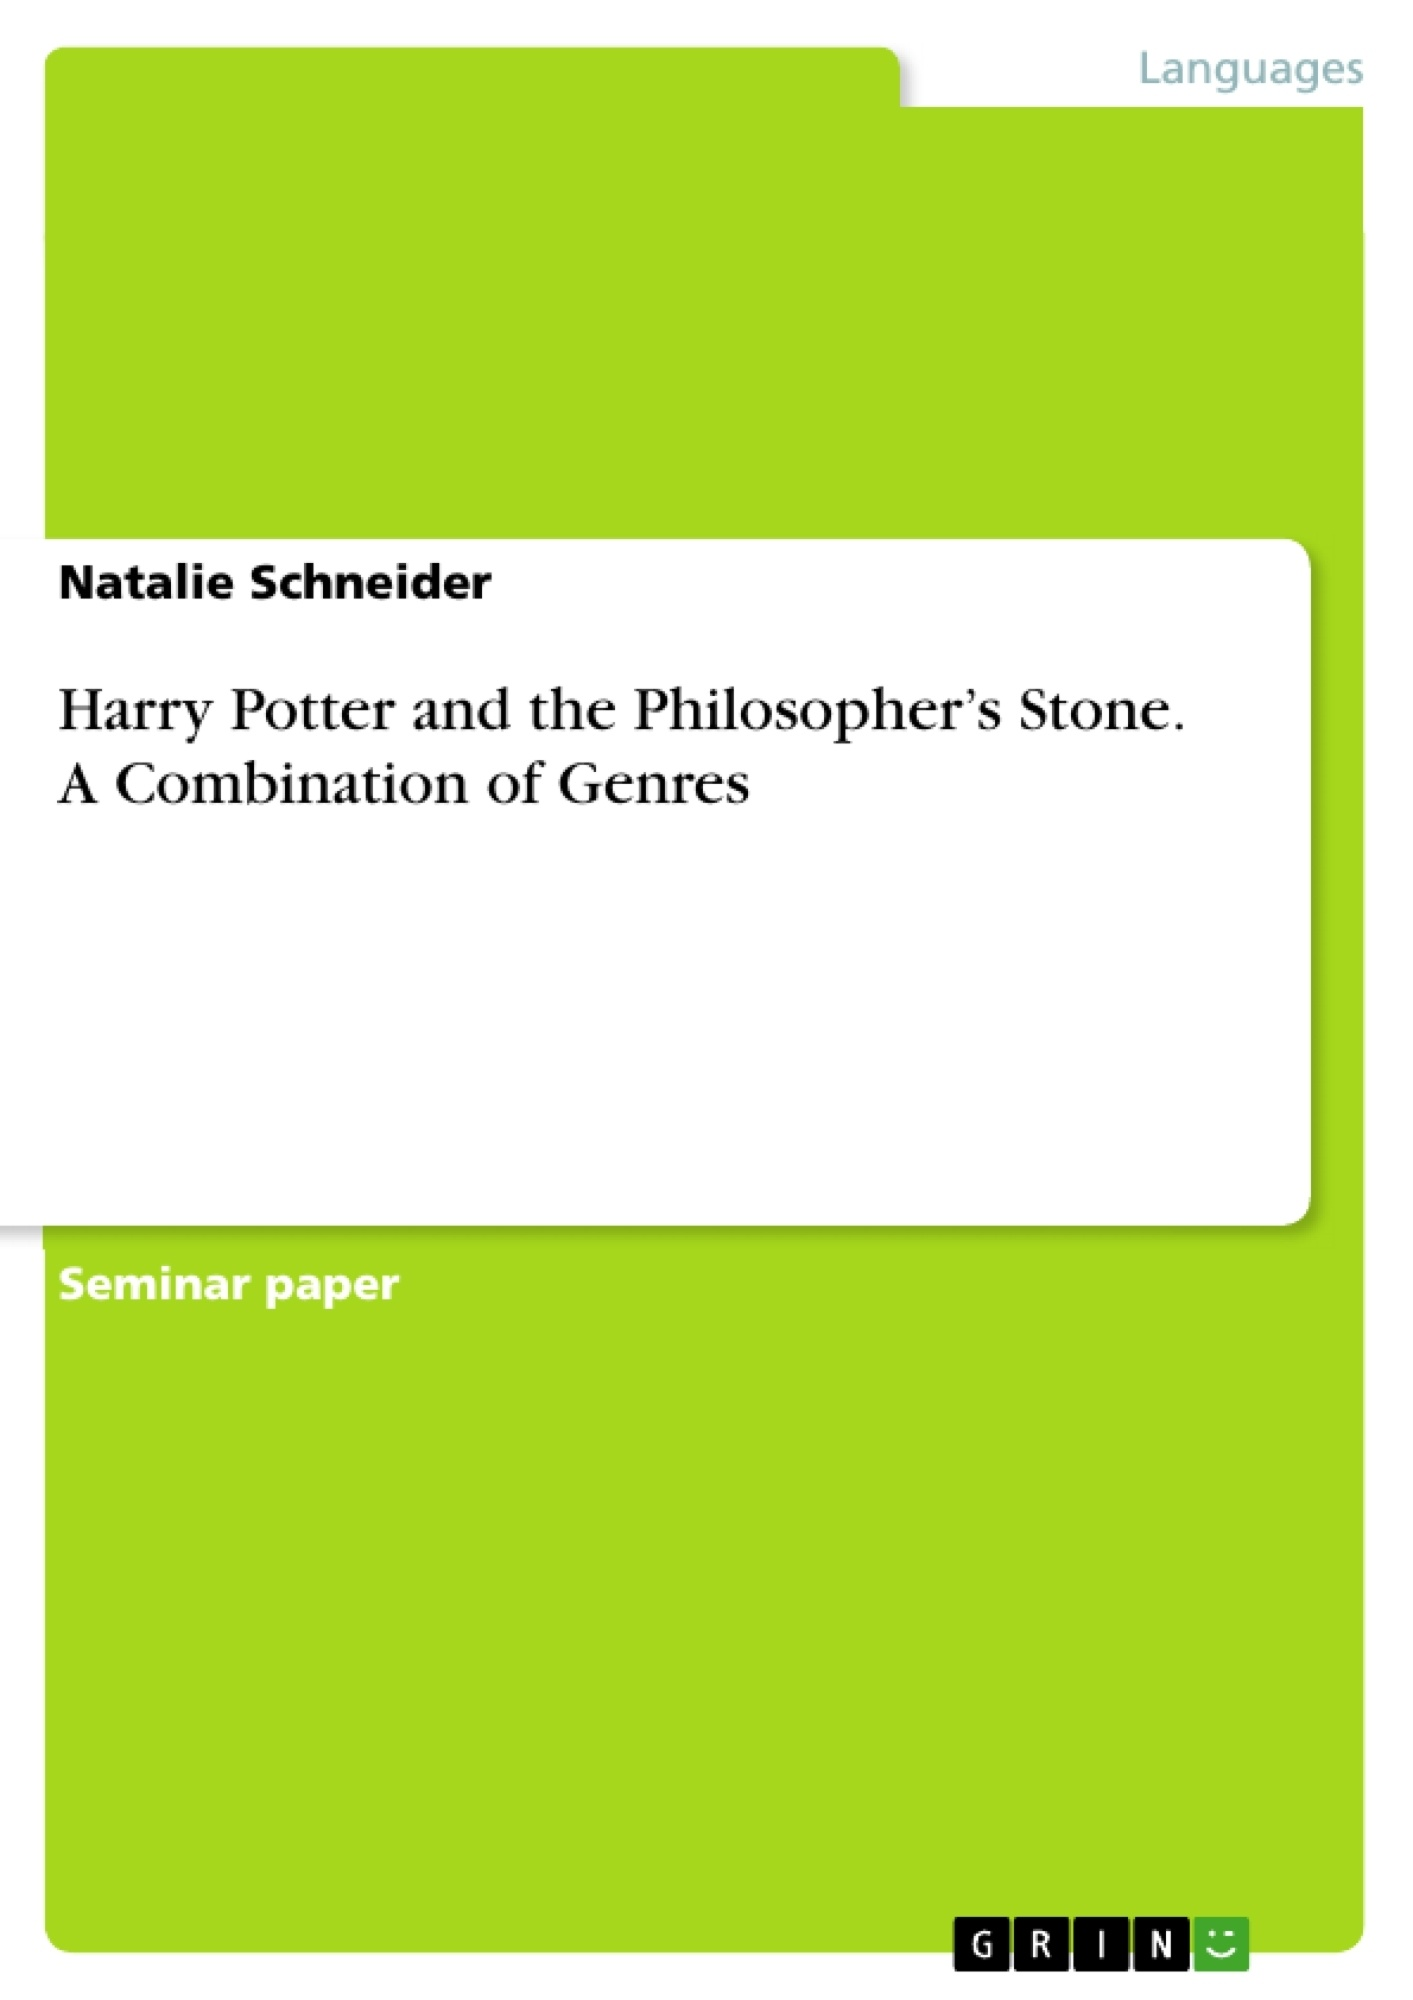 Title: Harry Potter and the Philosopher's Stone. A Combination of Genres